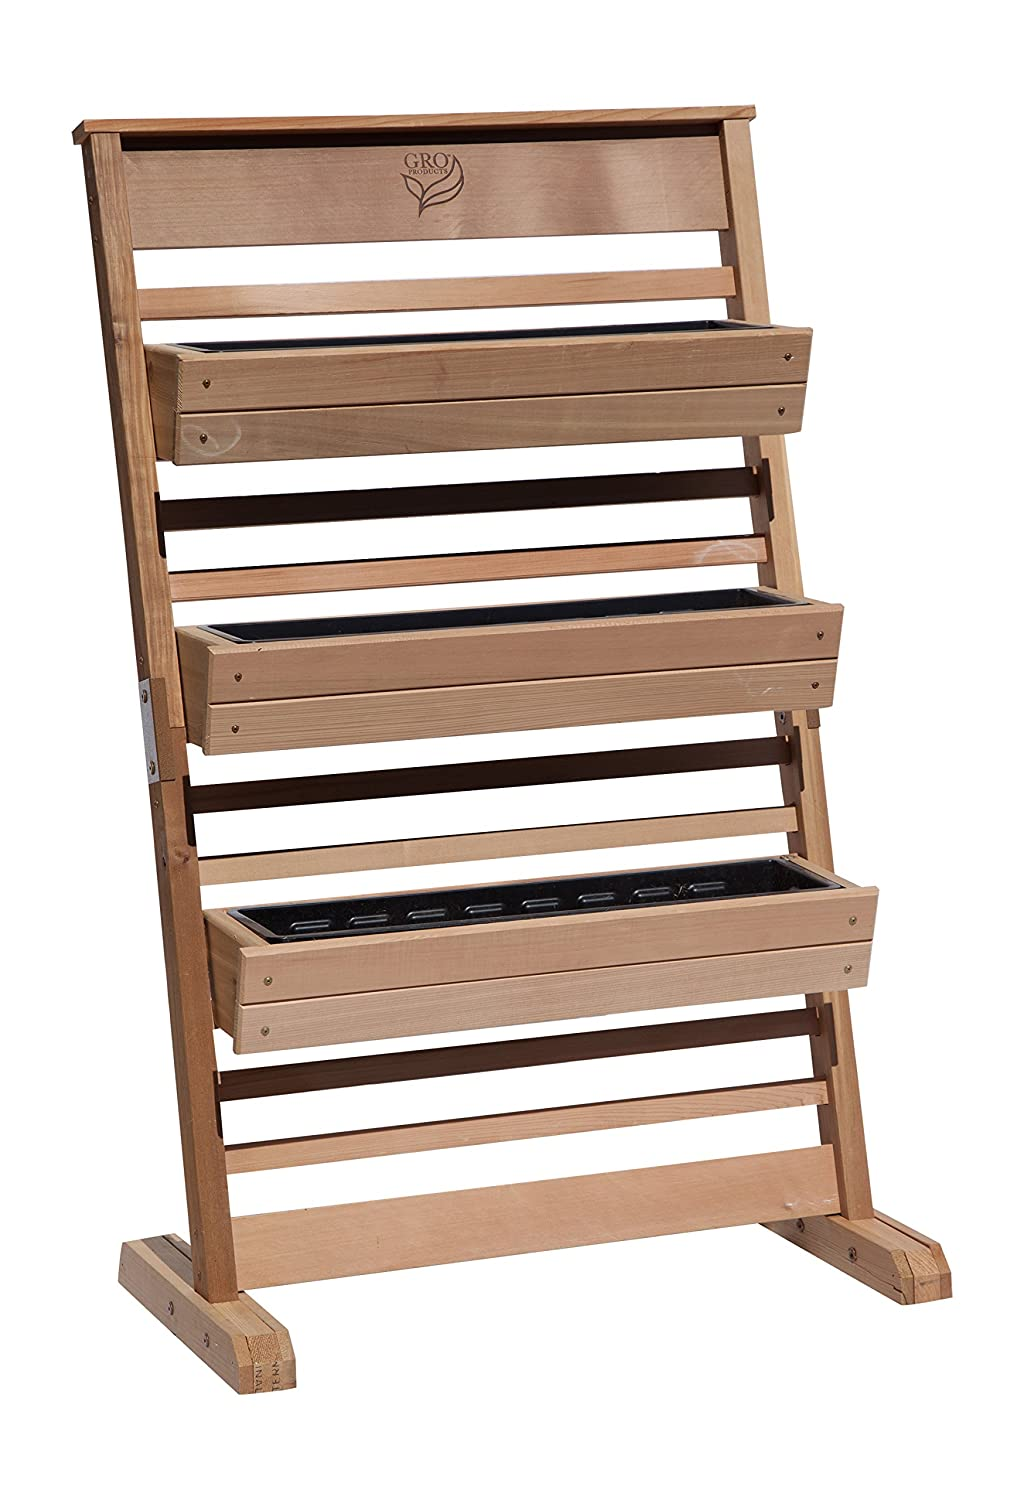 Amazon Com Gro Products Vertical System With 3 Planter Boxes 30